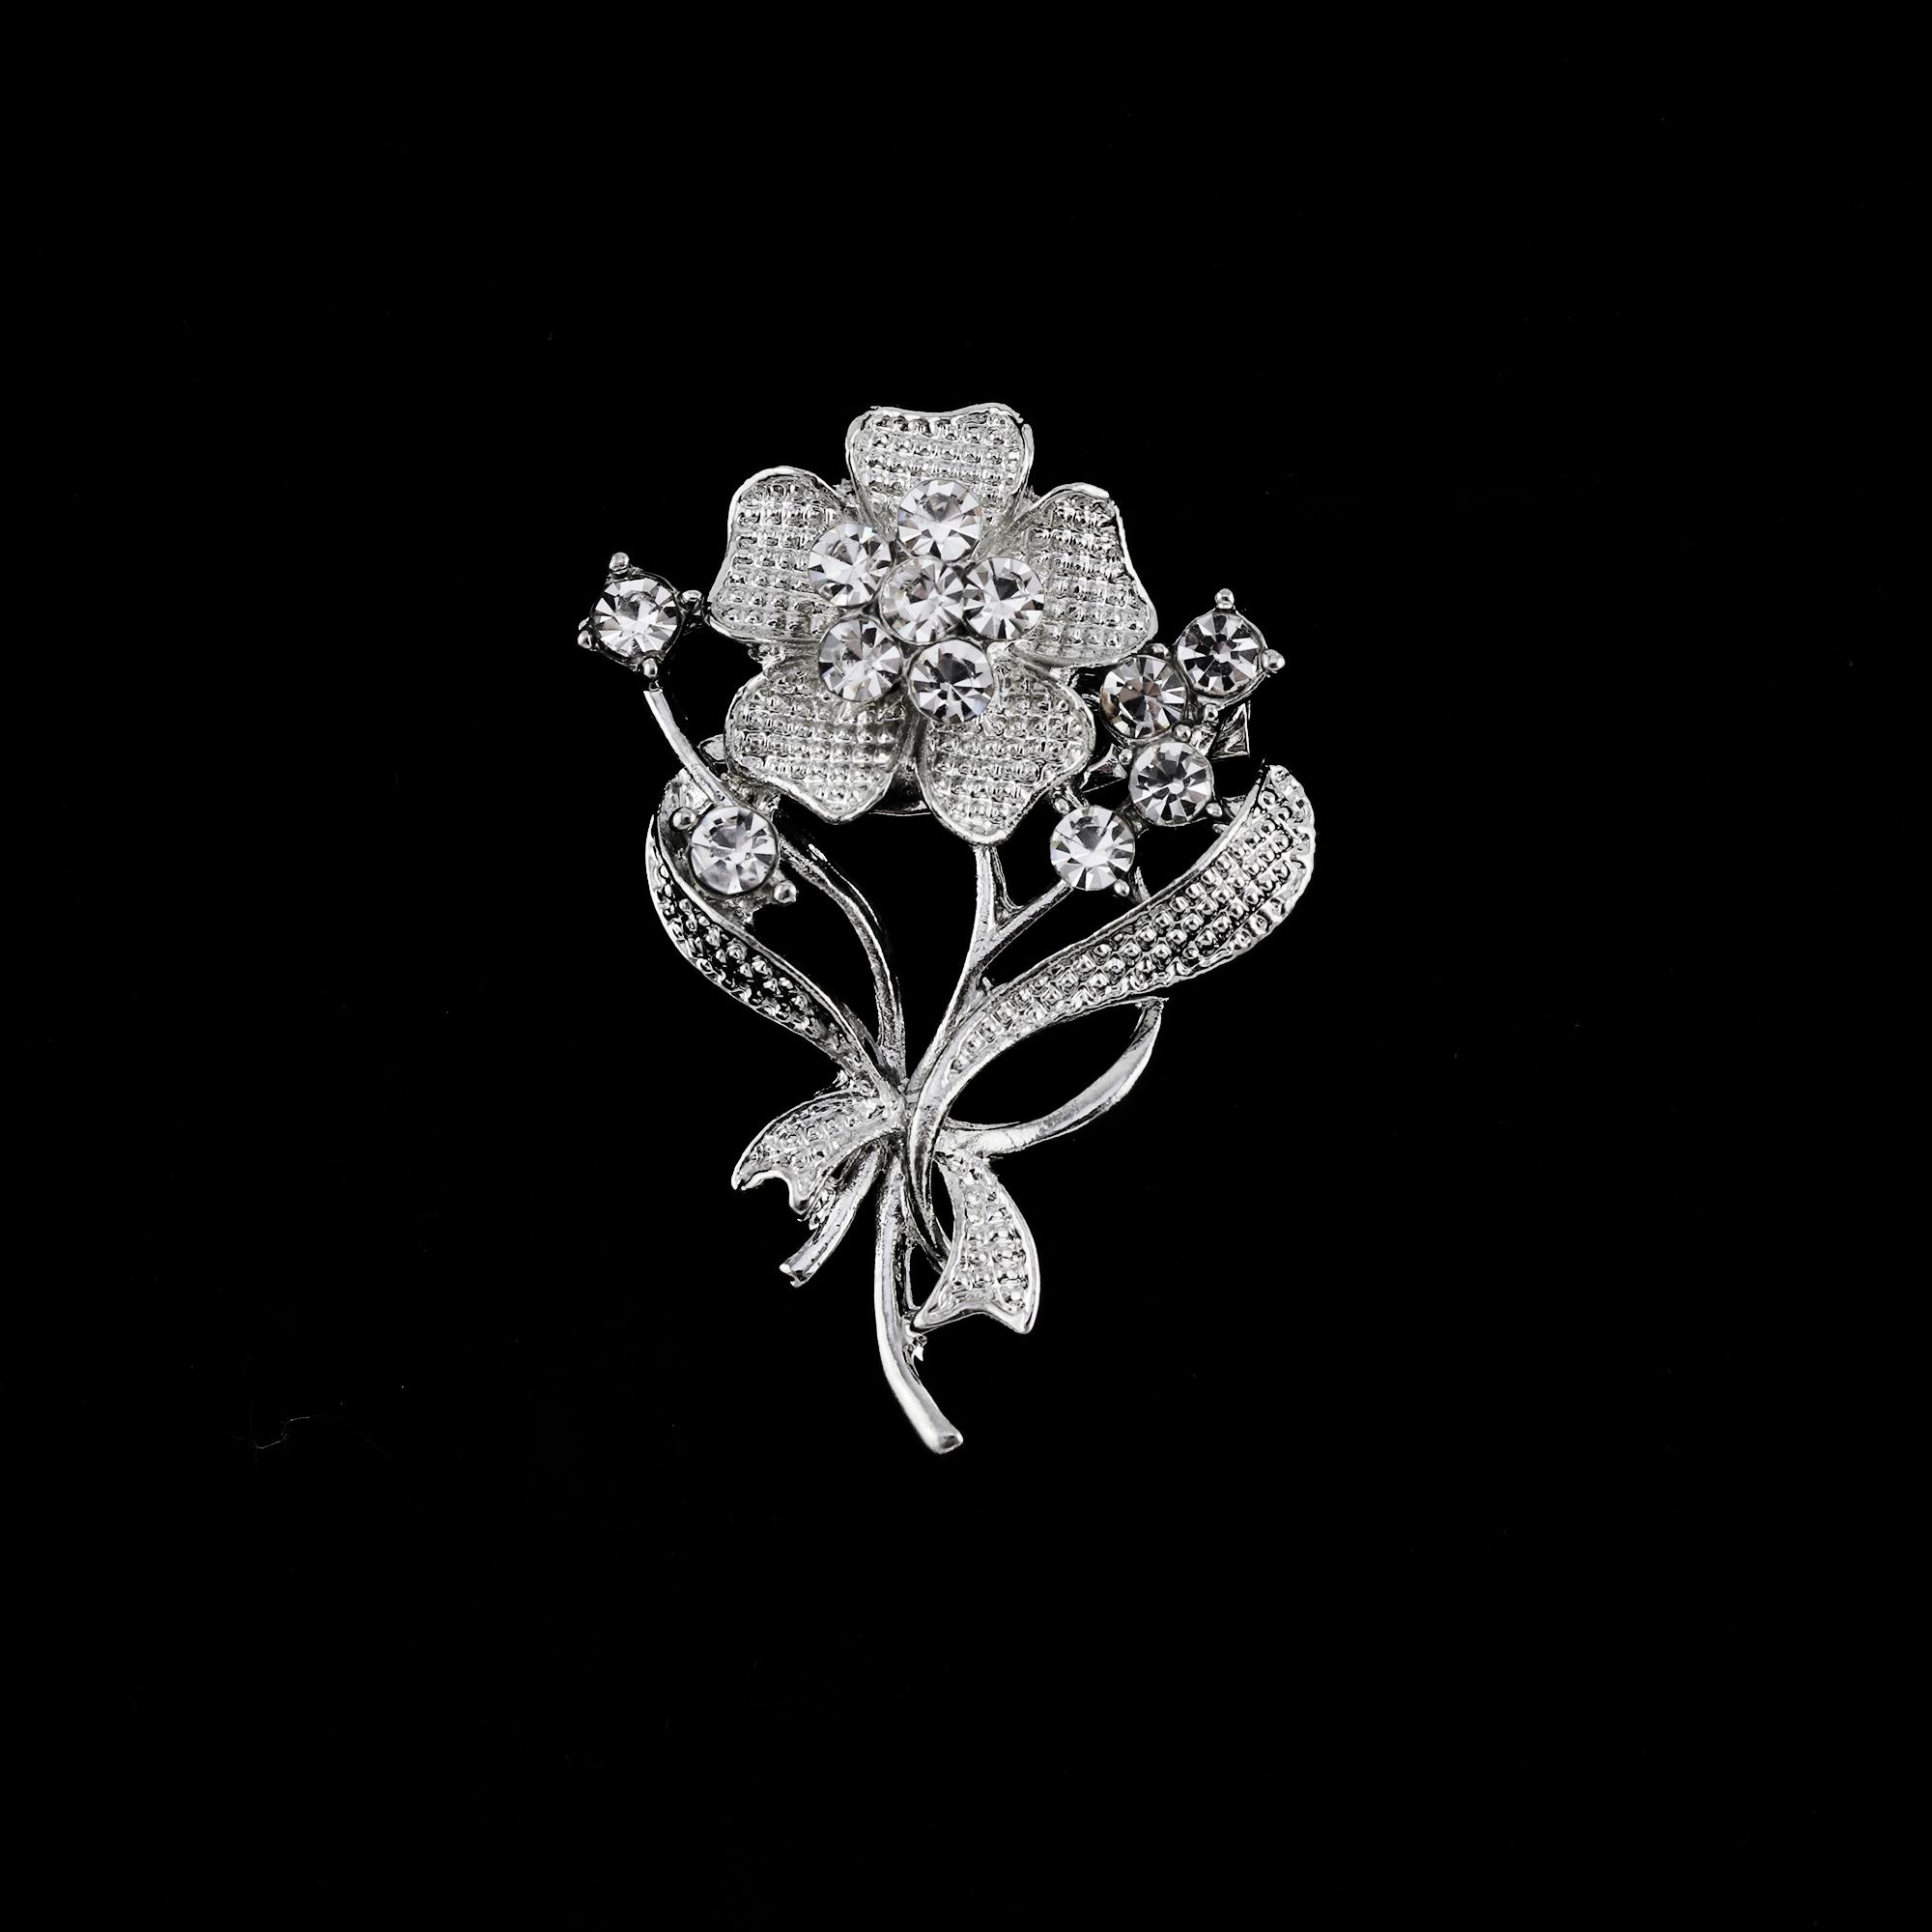 087c52ee308 Brooches for sale - Womens Brooches online brands, prices & reviews ...